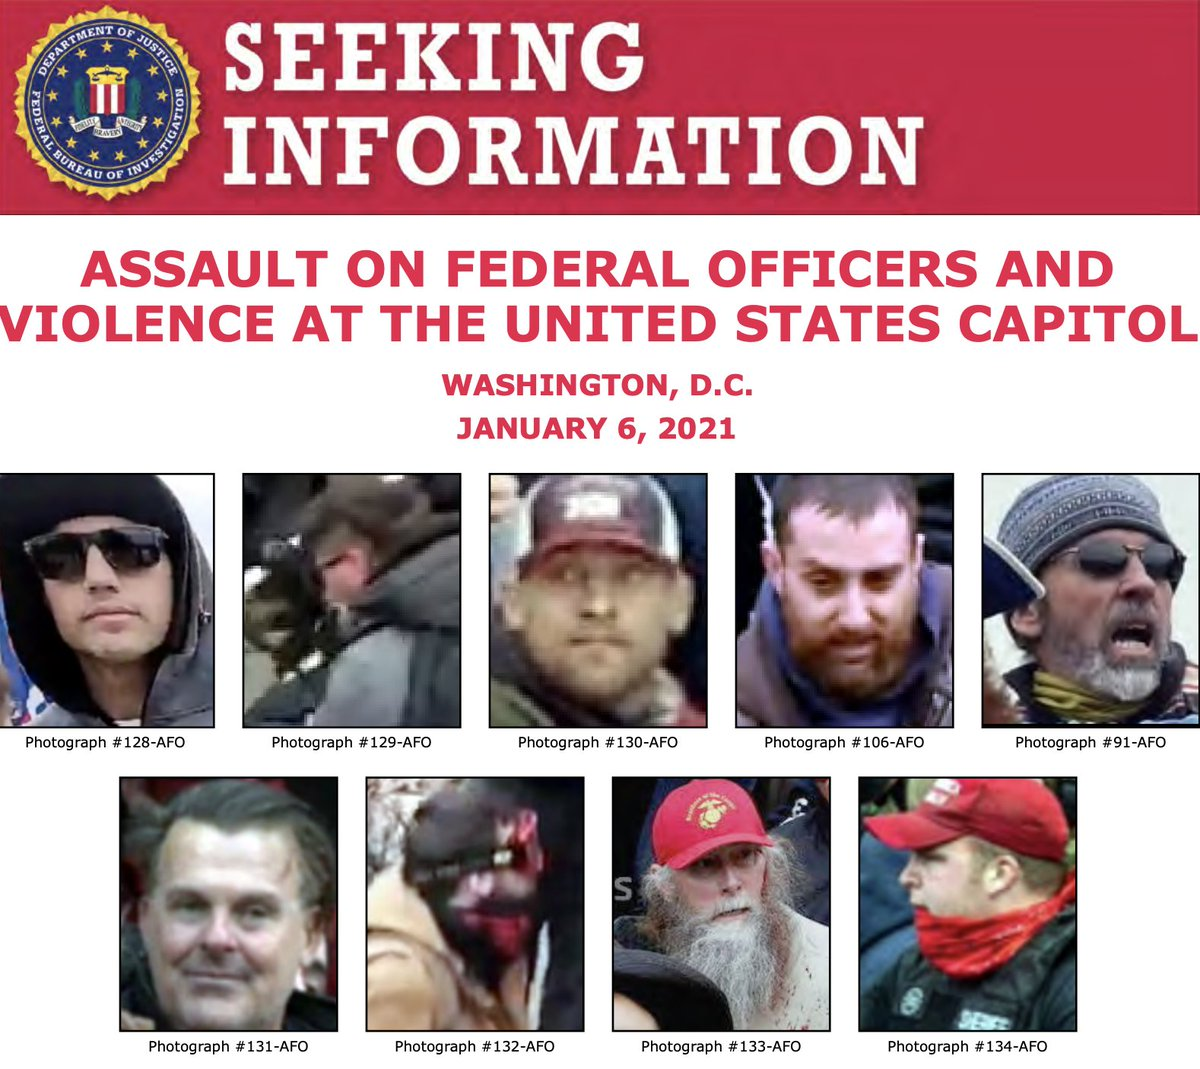 Help the #FBI identify individuals who unlawfully entered the U.S. Capitol on January 6 and assaulted multiple Metropolitan Police Department officers. If you have information about any of the individuals, submit a tip at . @FBIWFO